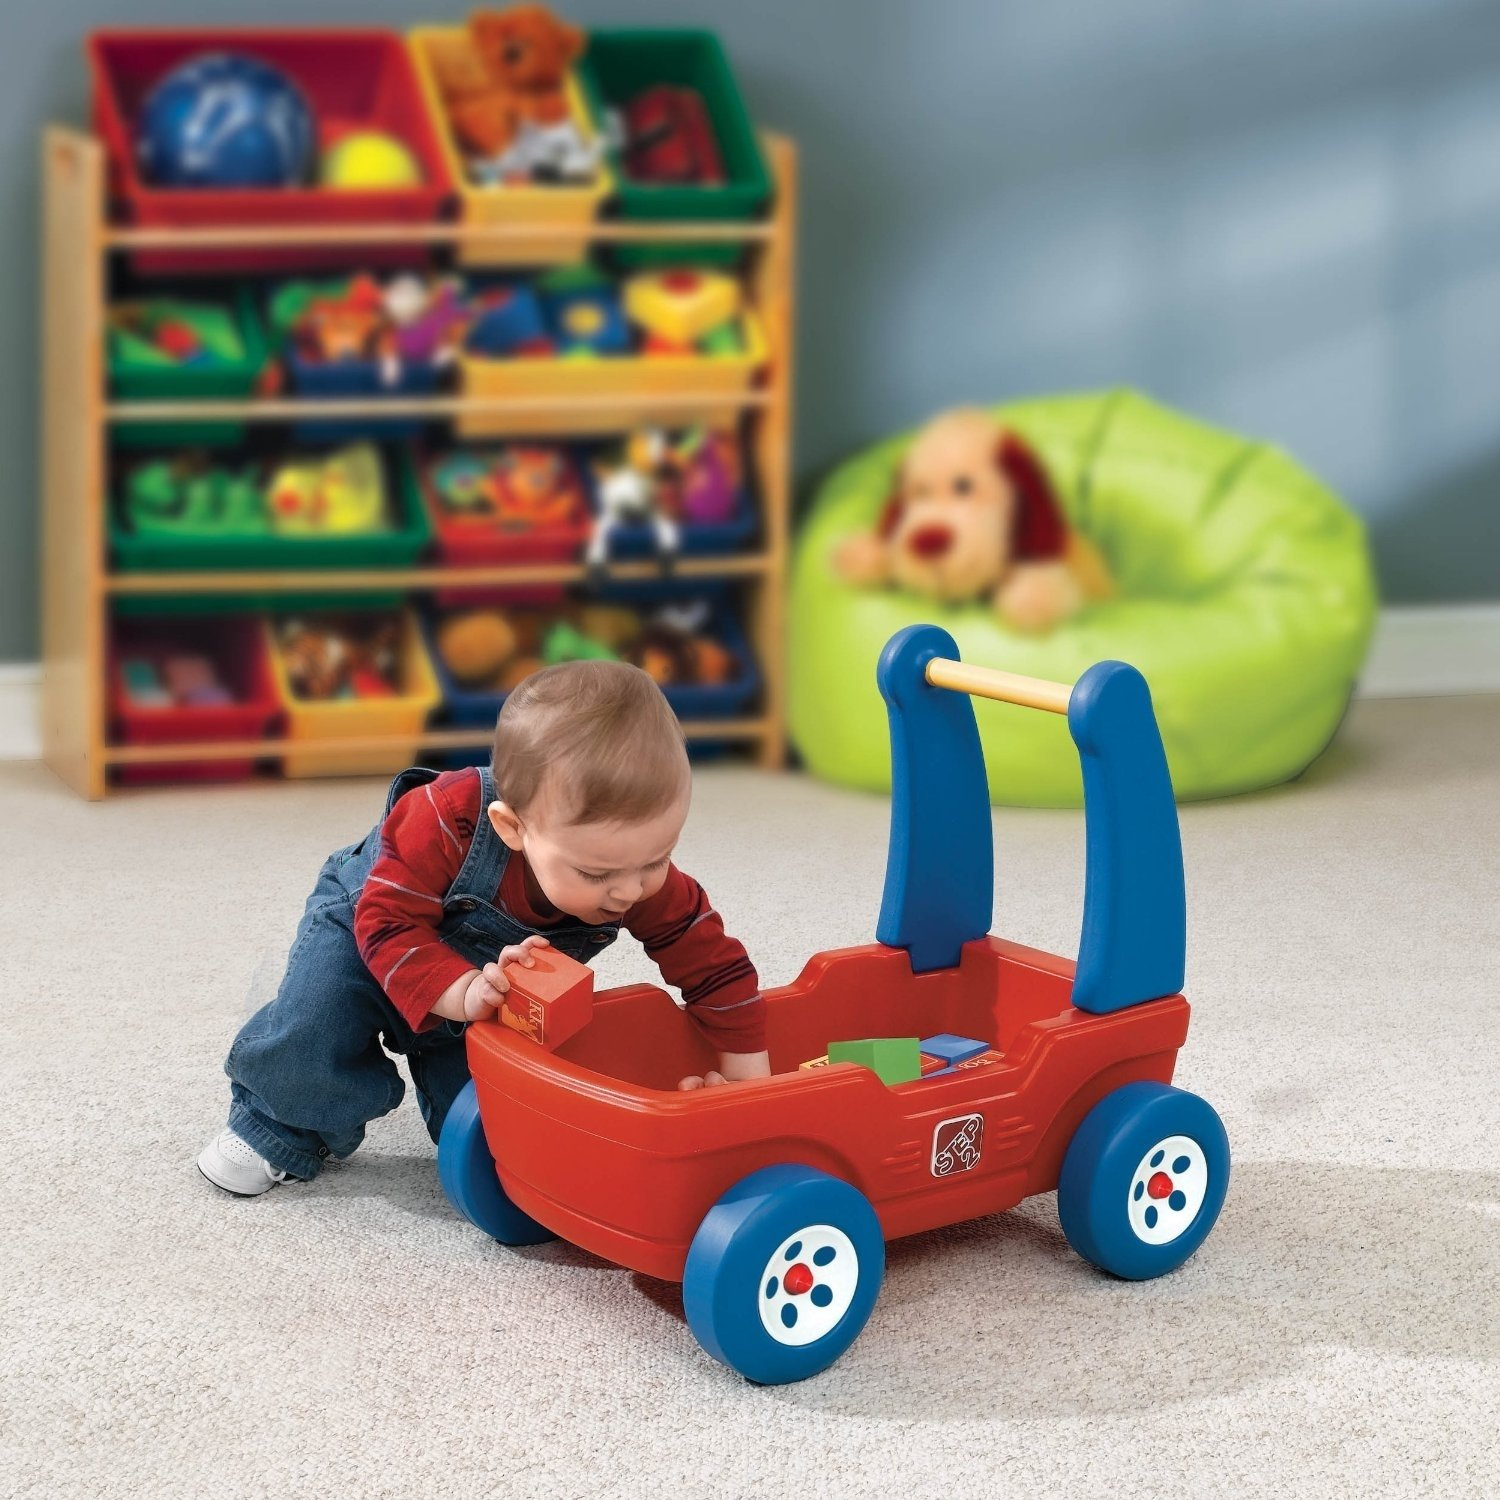 10 Fashionable Birthday Gift Ideas For 1 Year Old Boy Total Fab Best Gifts One